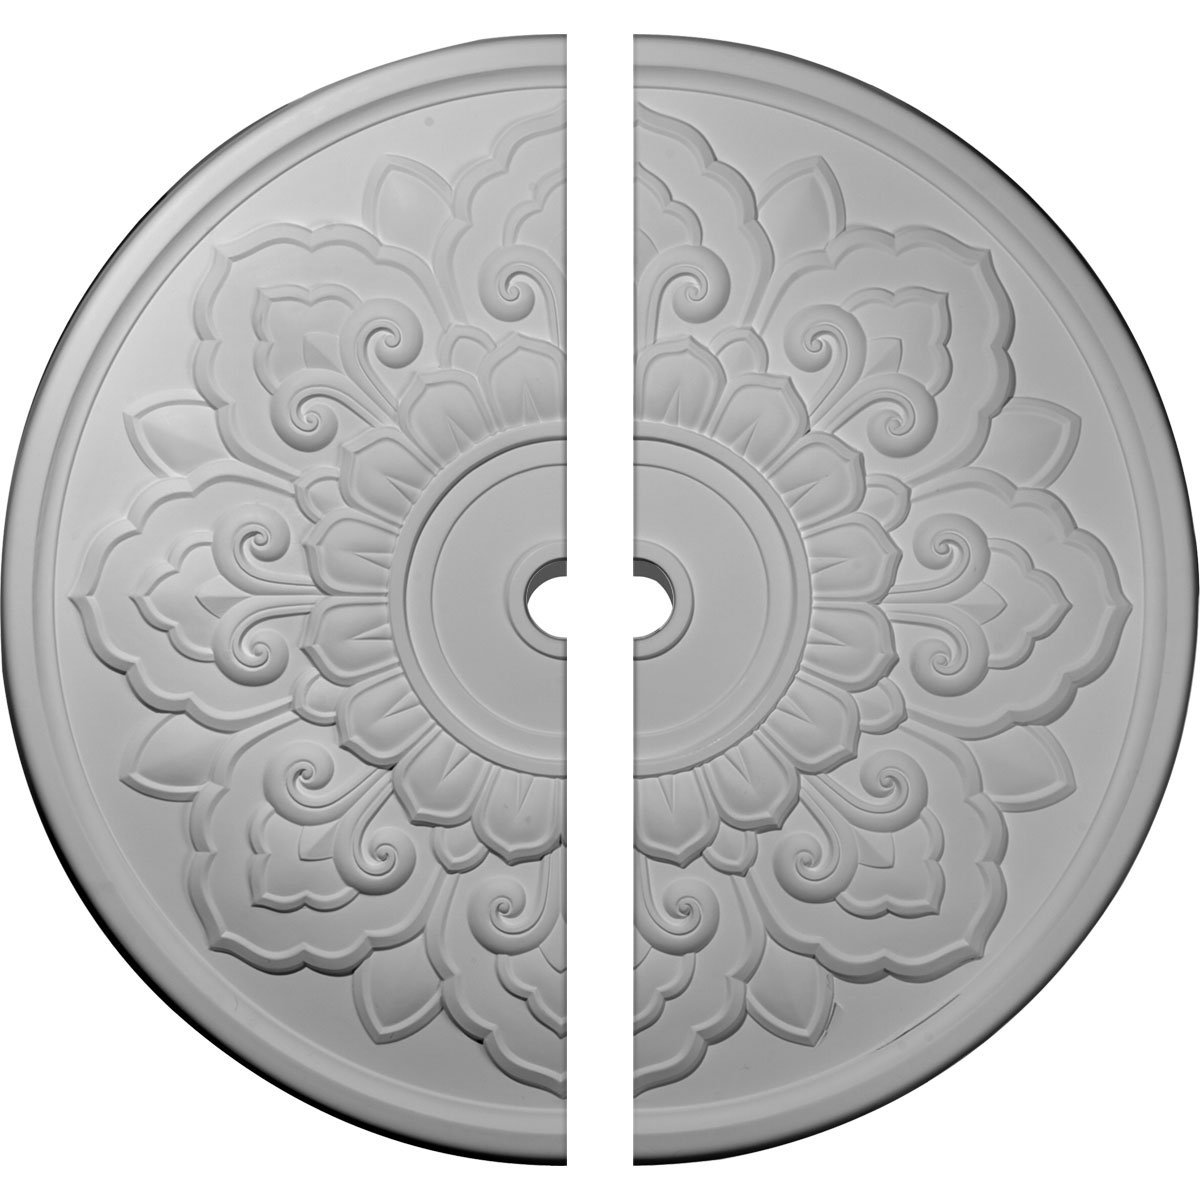 Ekena Millwork CM50LO2 50 OD x 3 5/8'' ID x 1 3/4'' P Lorry Ceiling Medallion, Two Piece (Fits Canopies up to 14 1/8''), Factory Primed White